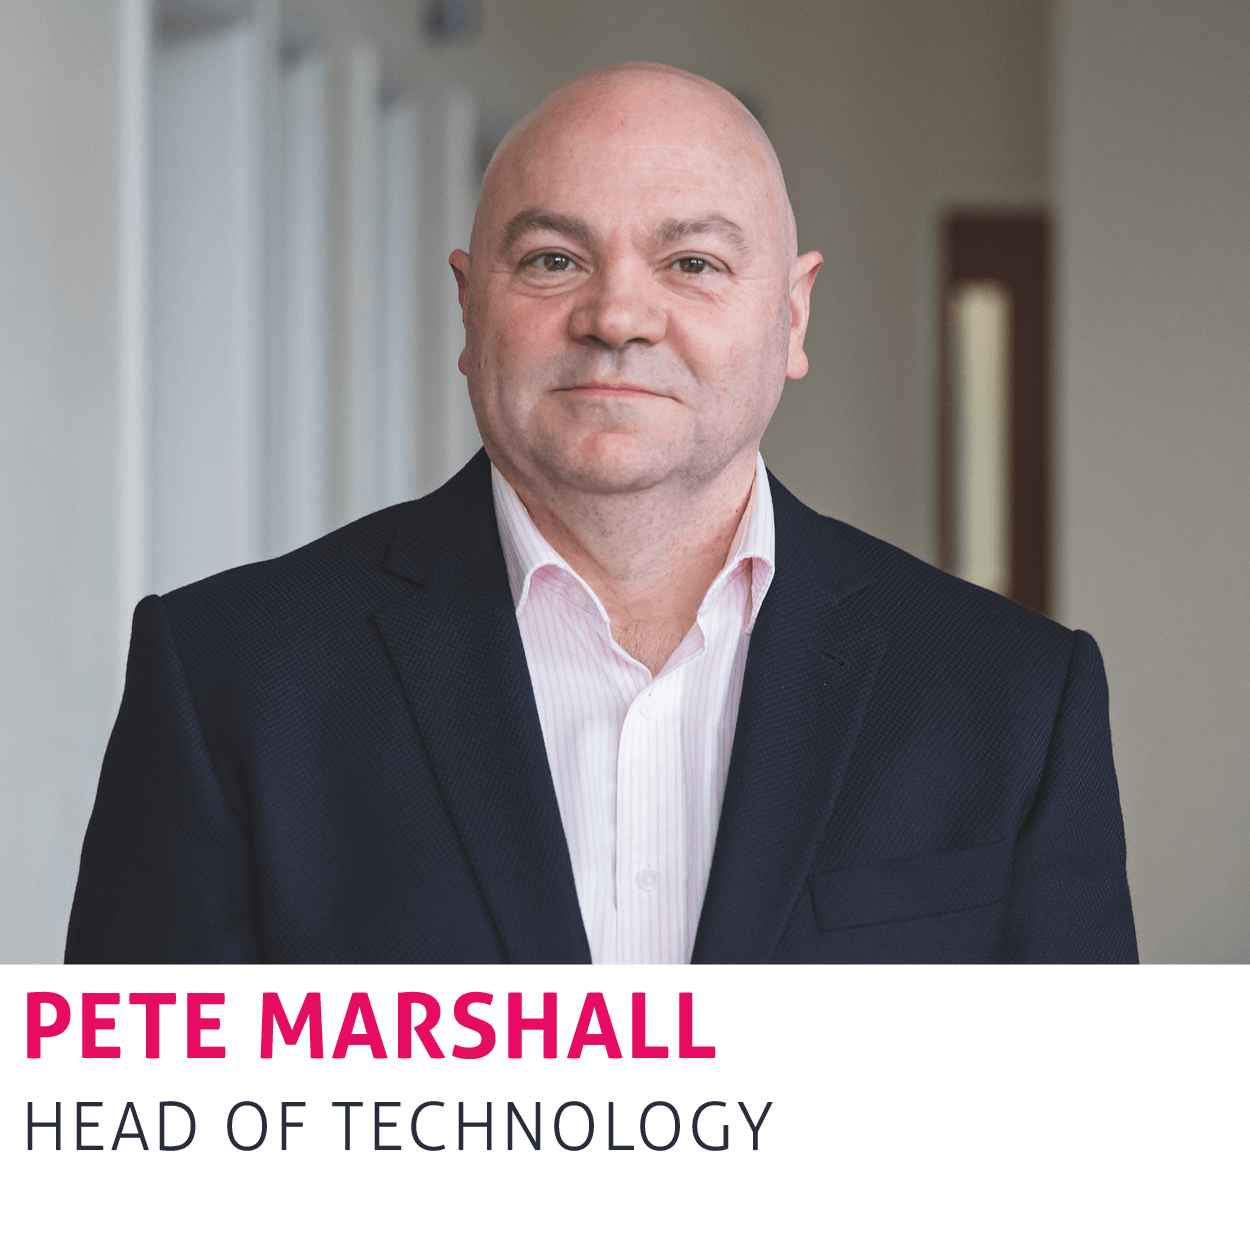 Pete Marshall, Head of Technology